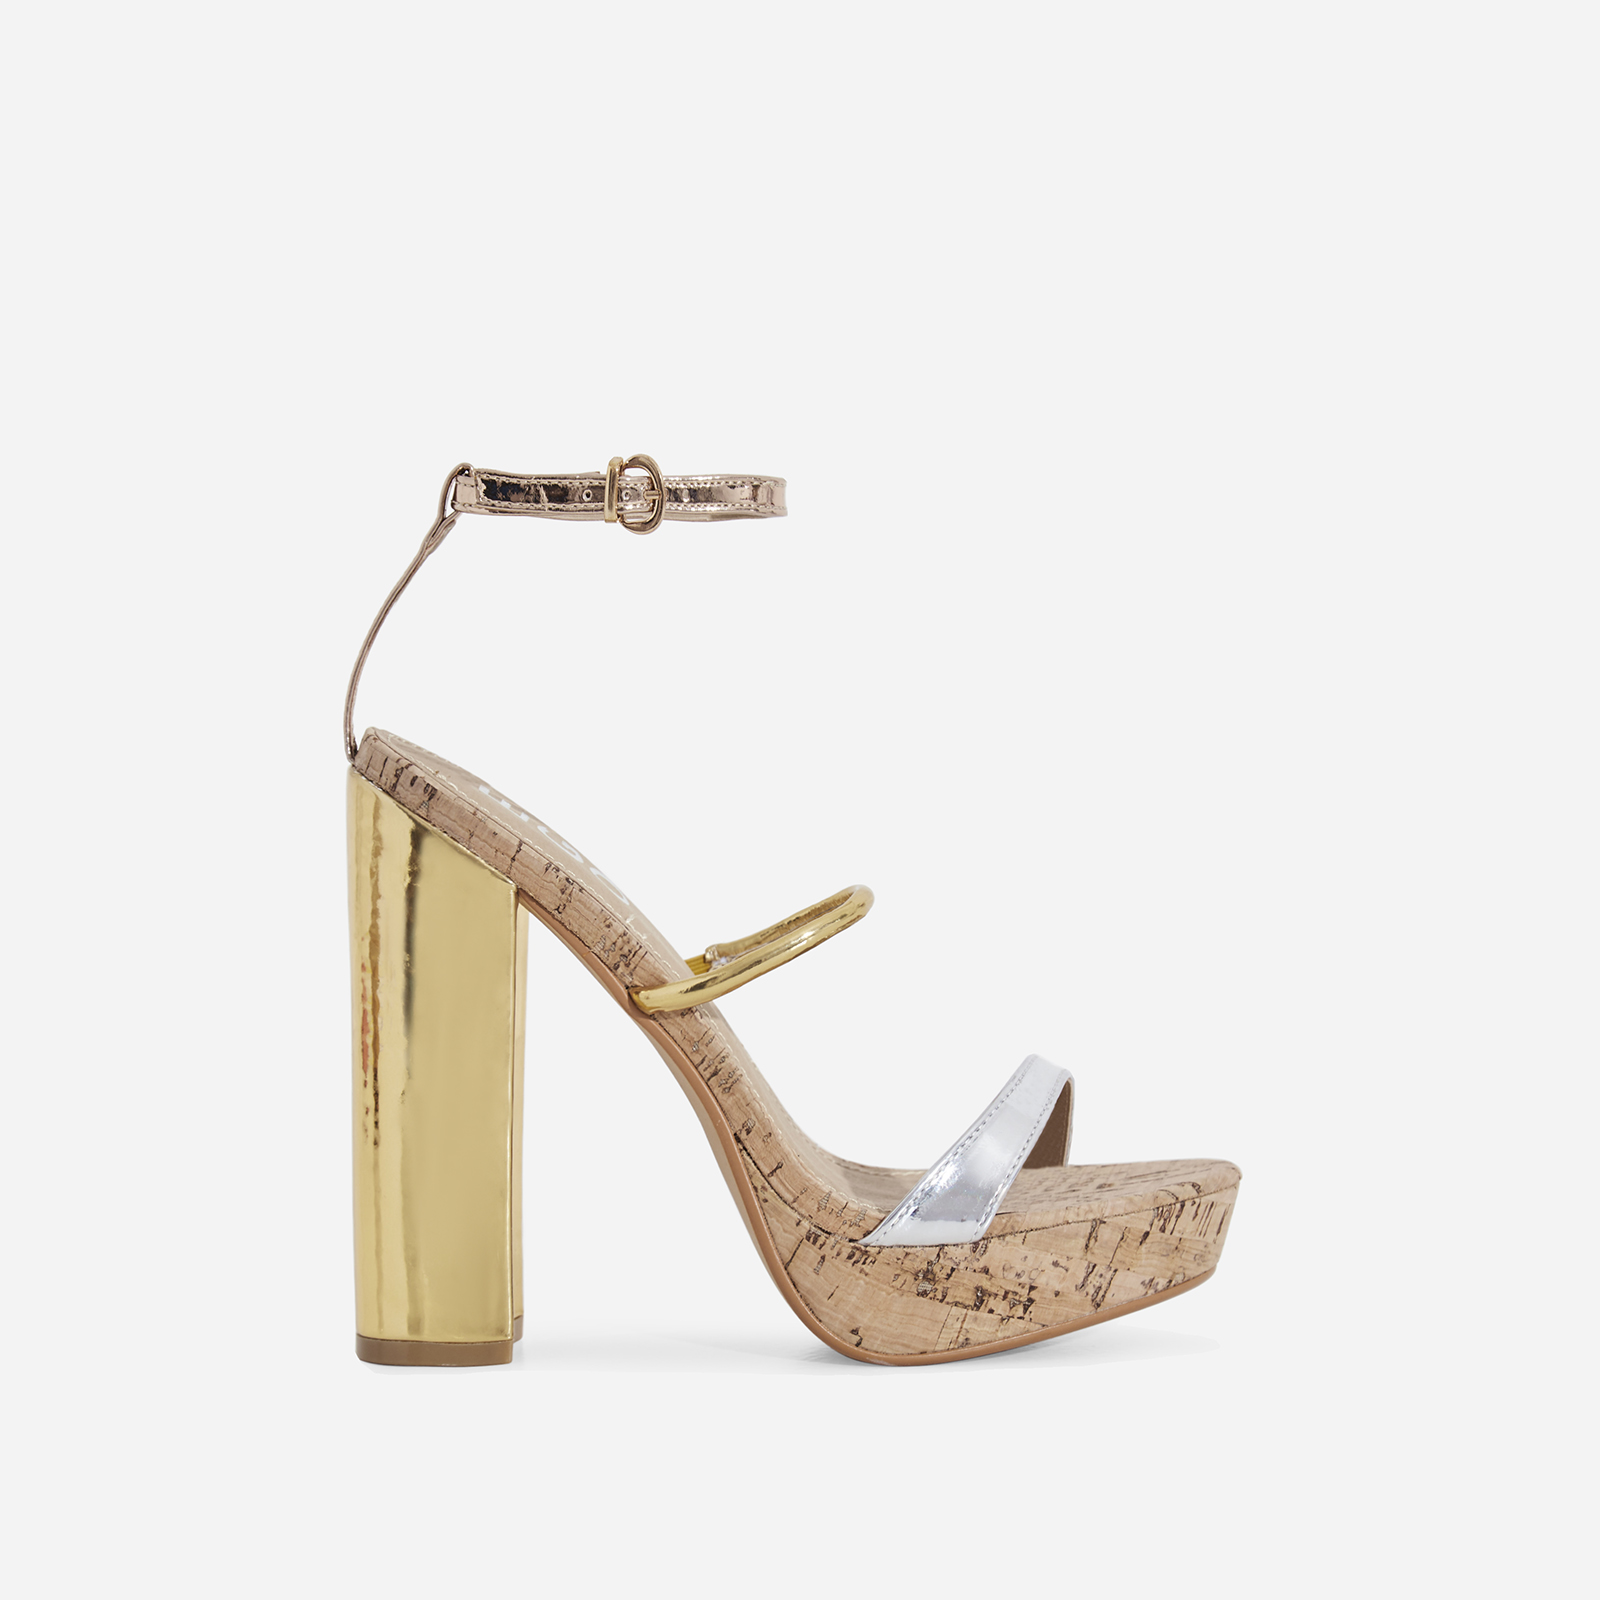 Lyric Cork Platform Heel In Metallic Faux Leather